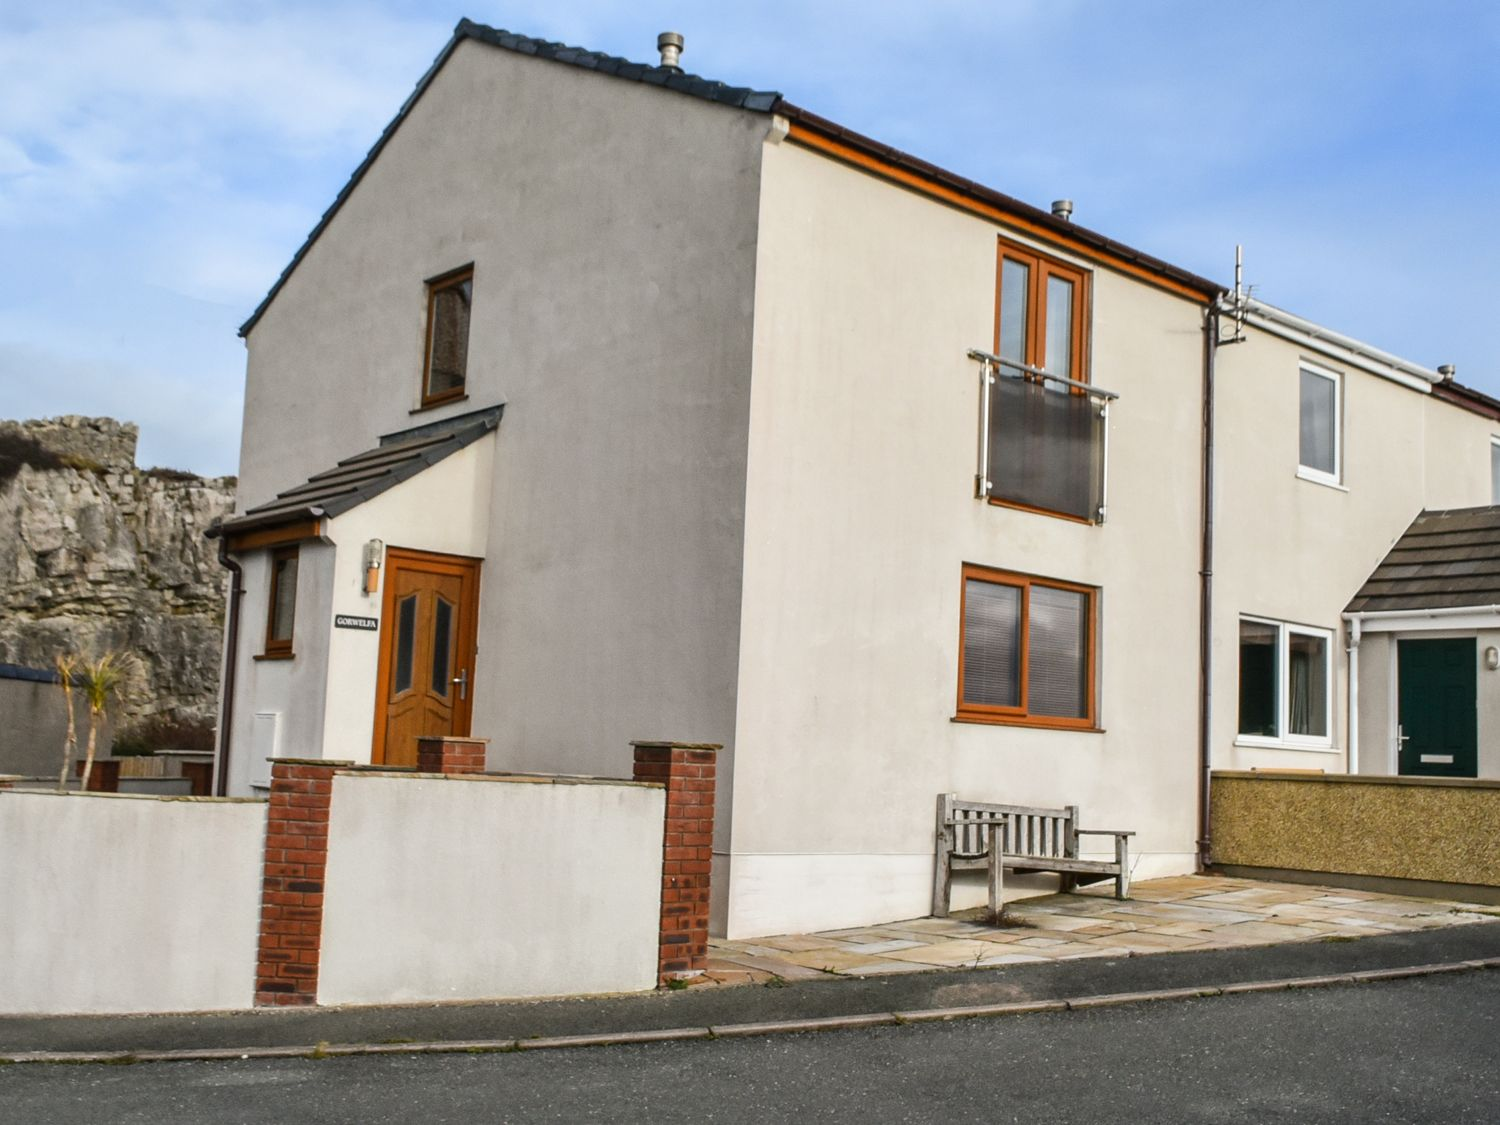 11 Anglesey Road - North Wales - 970554 - photo 1